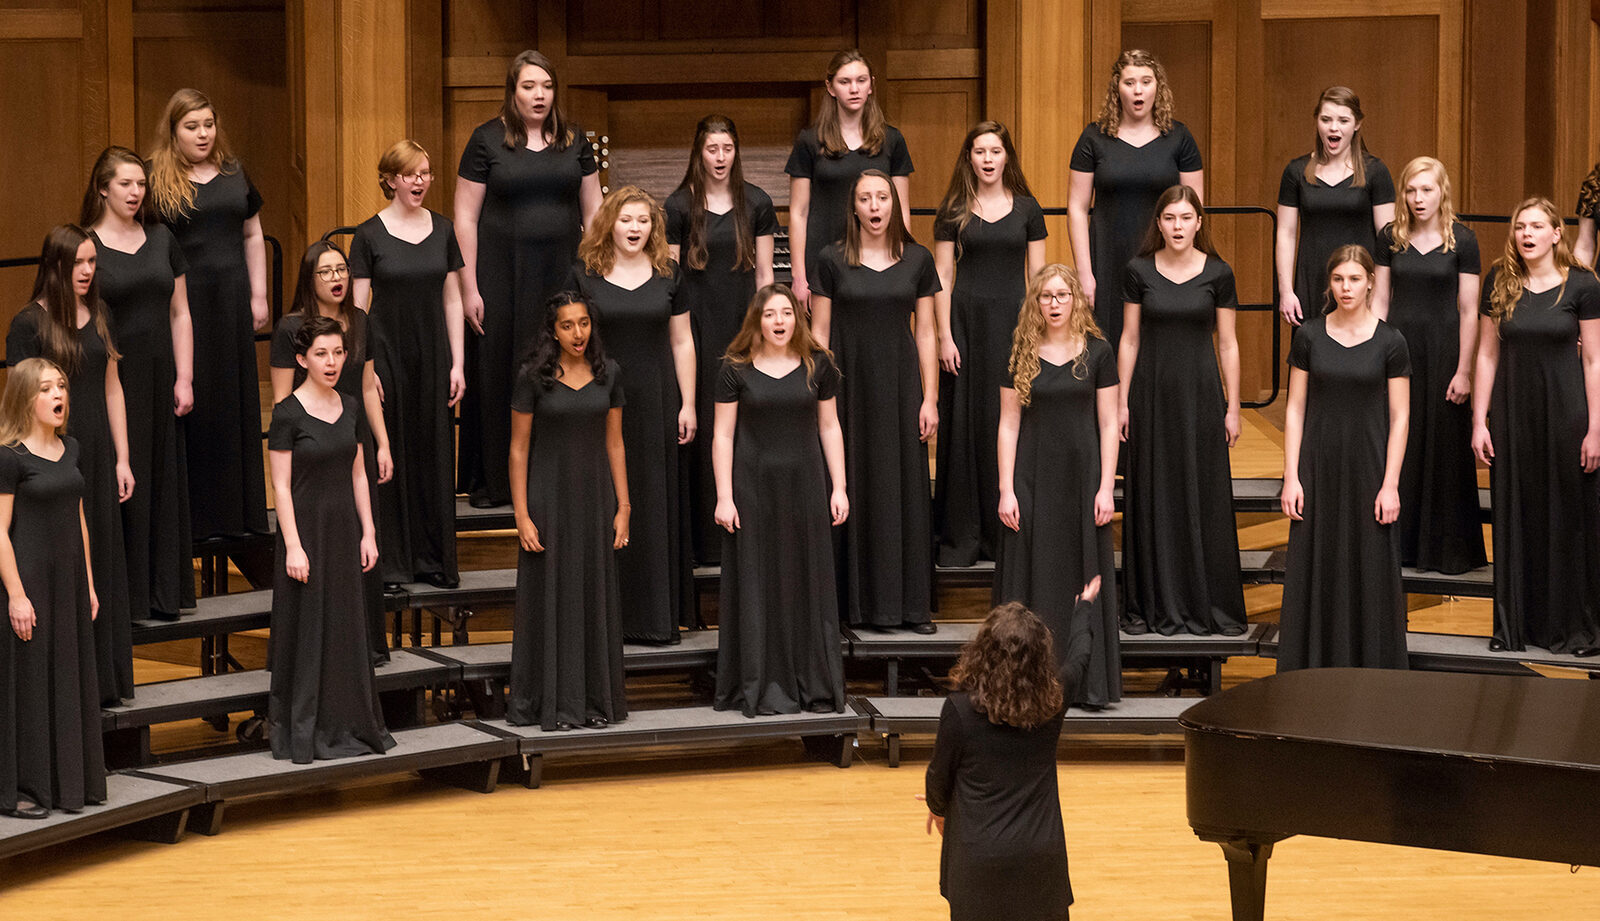 Bel Canto performing during a concert. They wear floor-length, short-sleeved, black dresses.